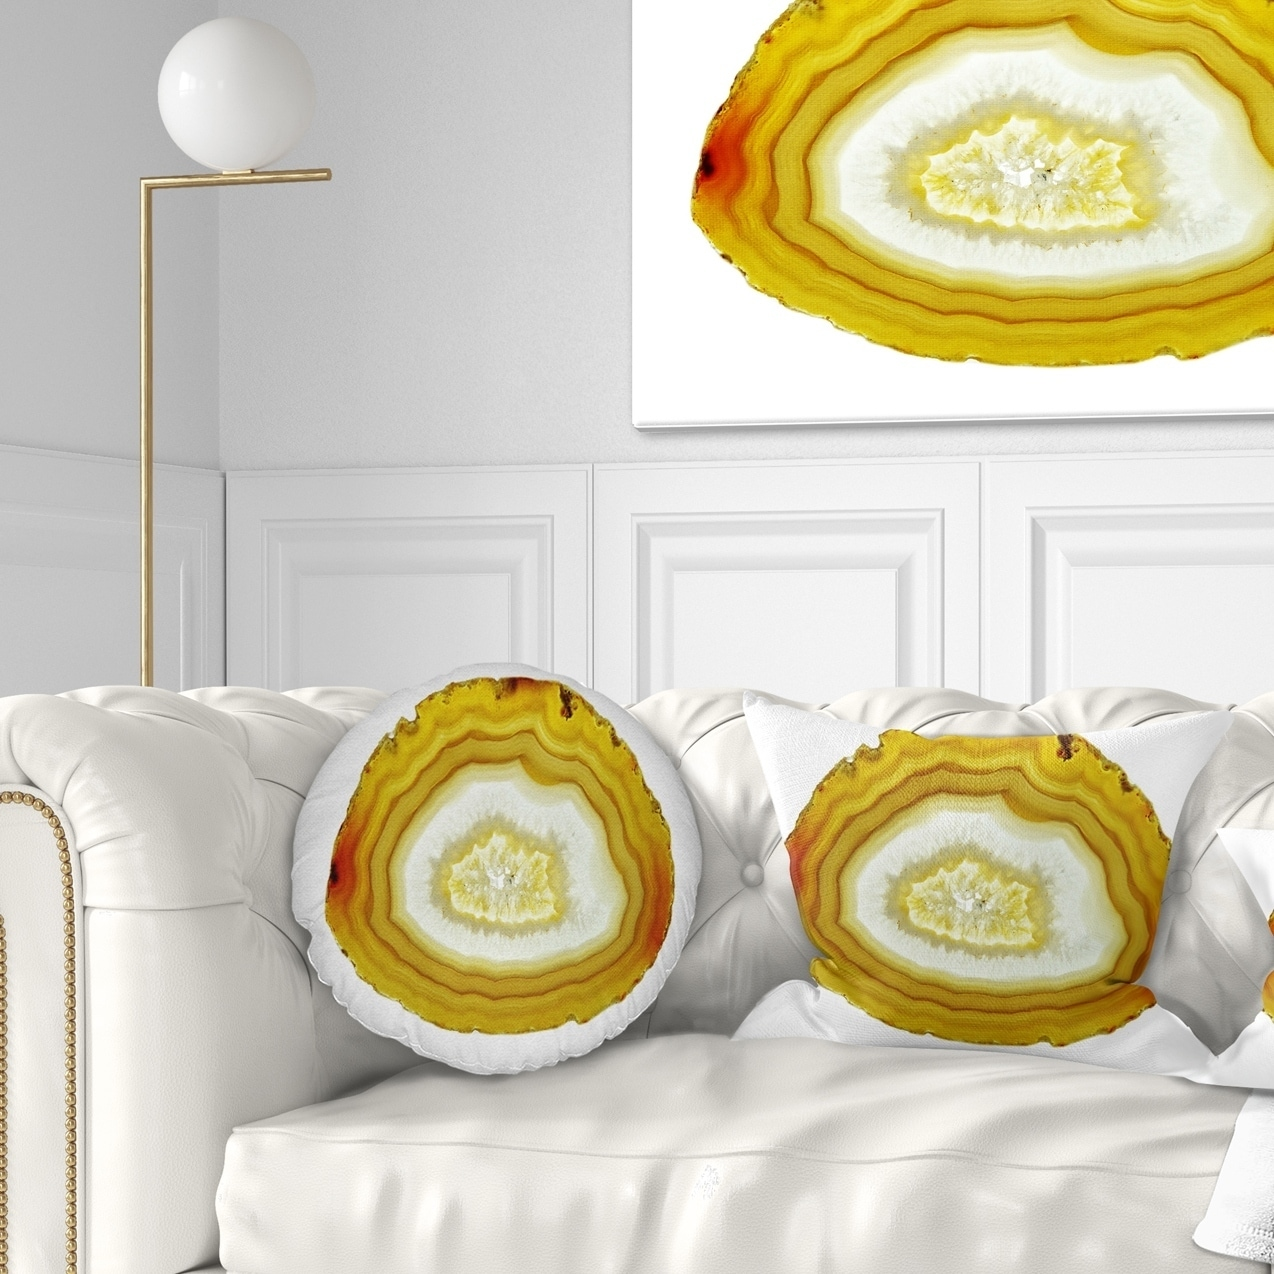 Pillow Insert 26 in Cushion Cover Printed on Both Side Sofa Designart CU14479-26-26 Yellow Agate with Geological Crystal Abstract Throw Cushion Pillow Cover for Living Room x 26 in